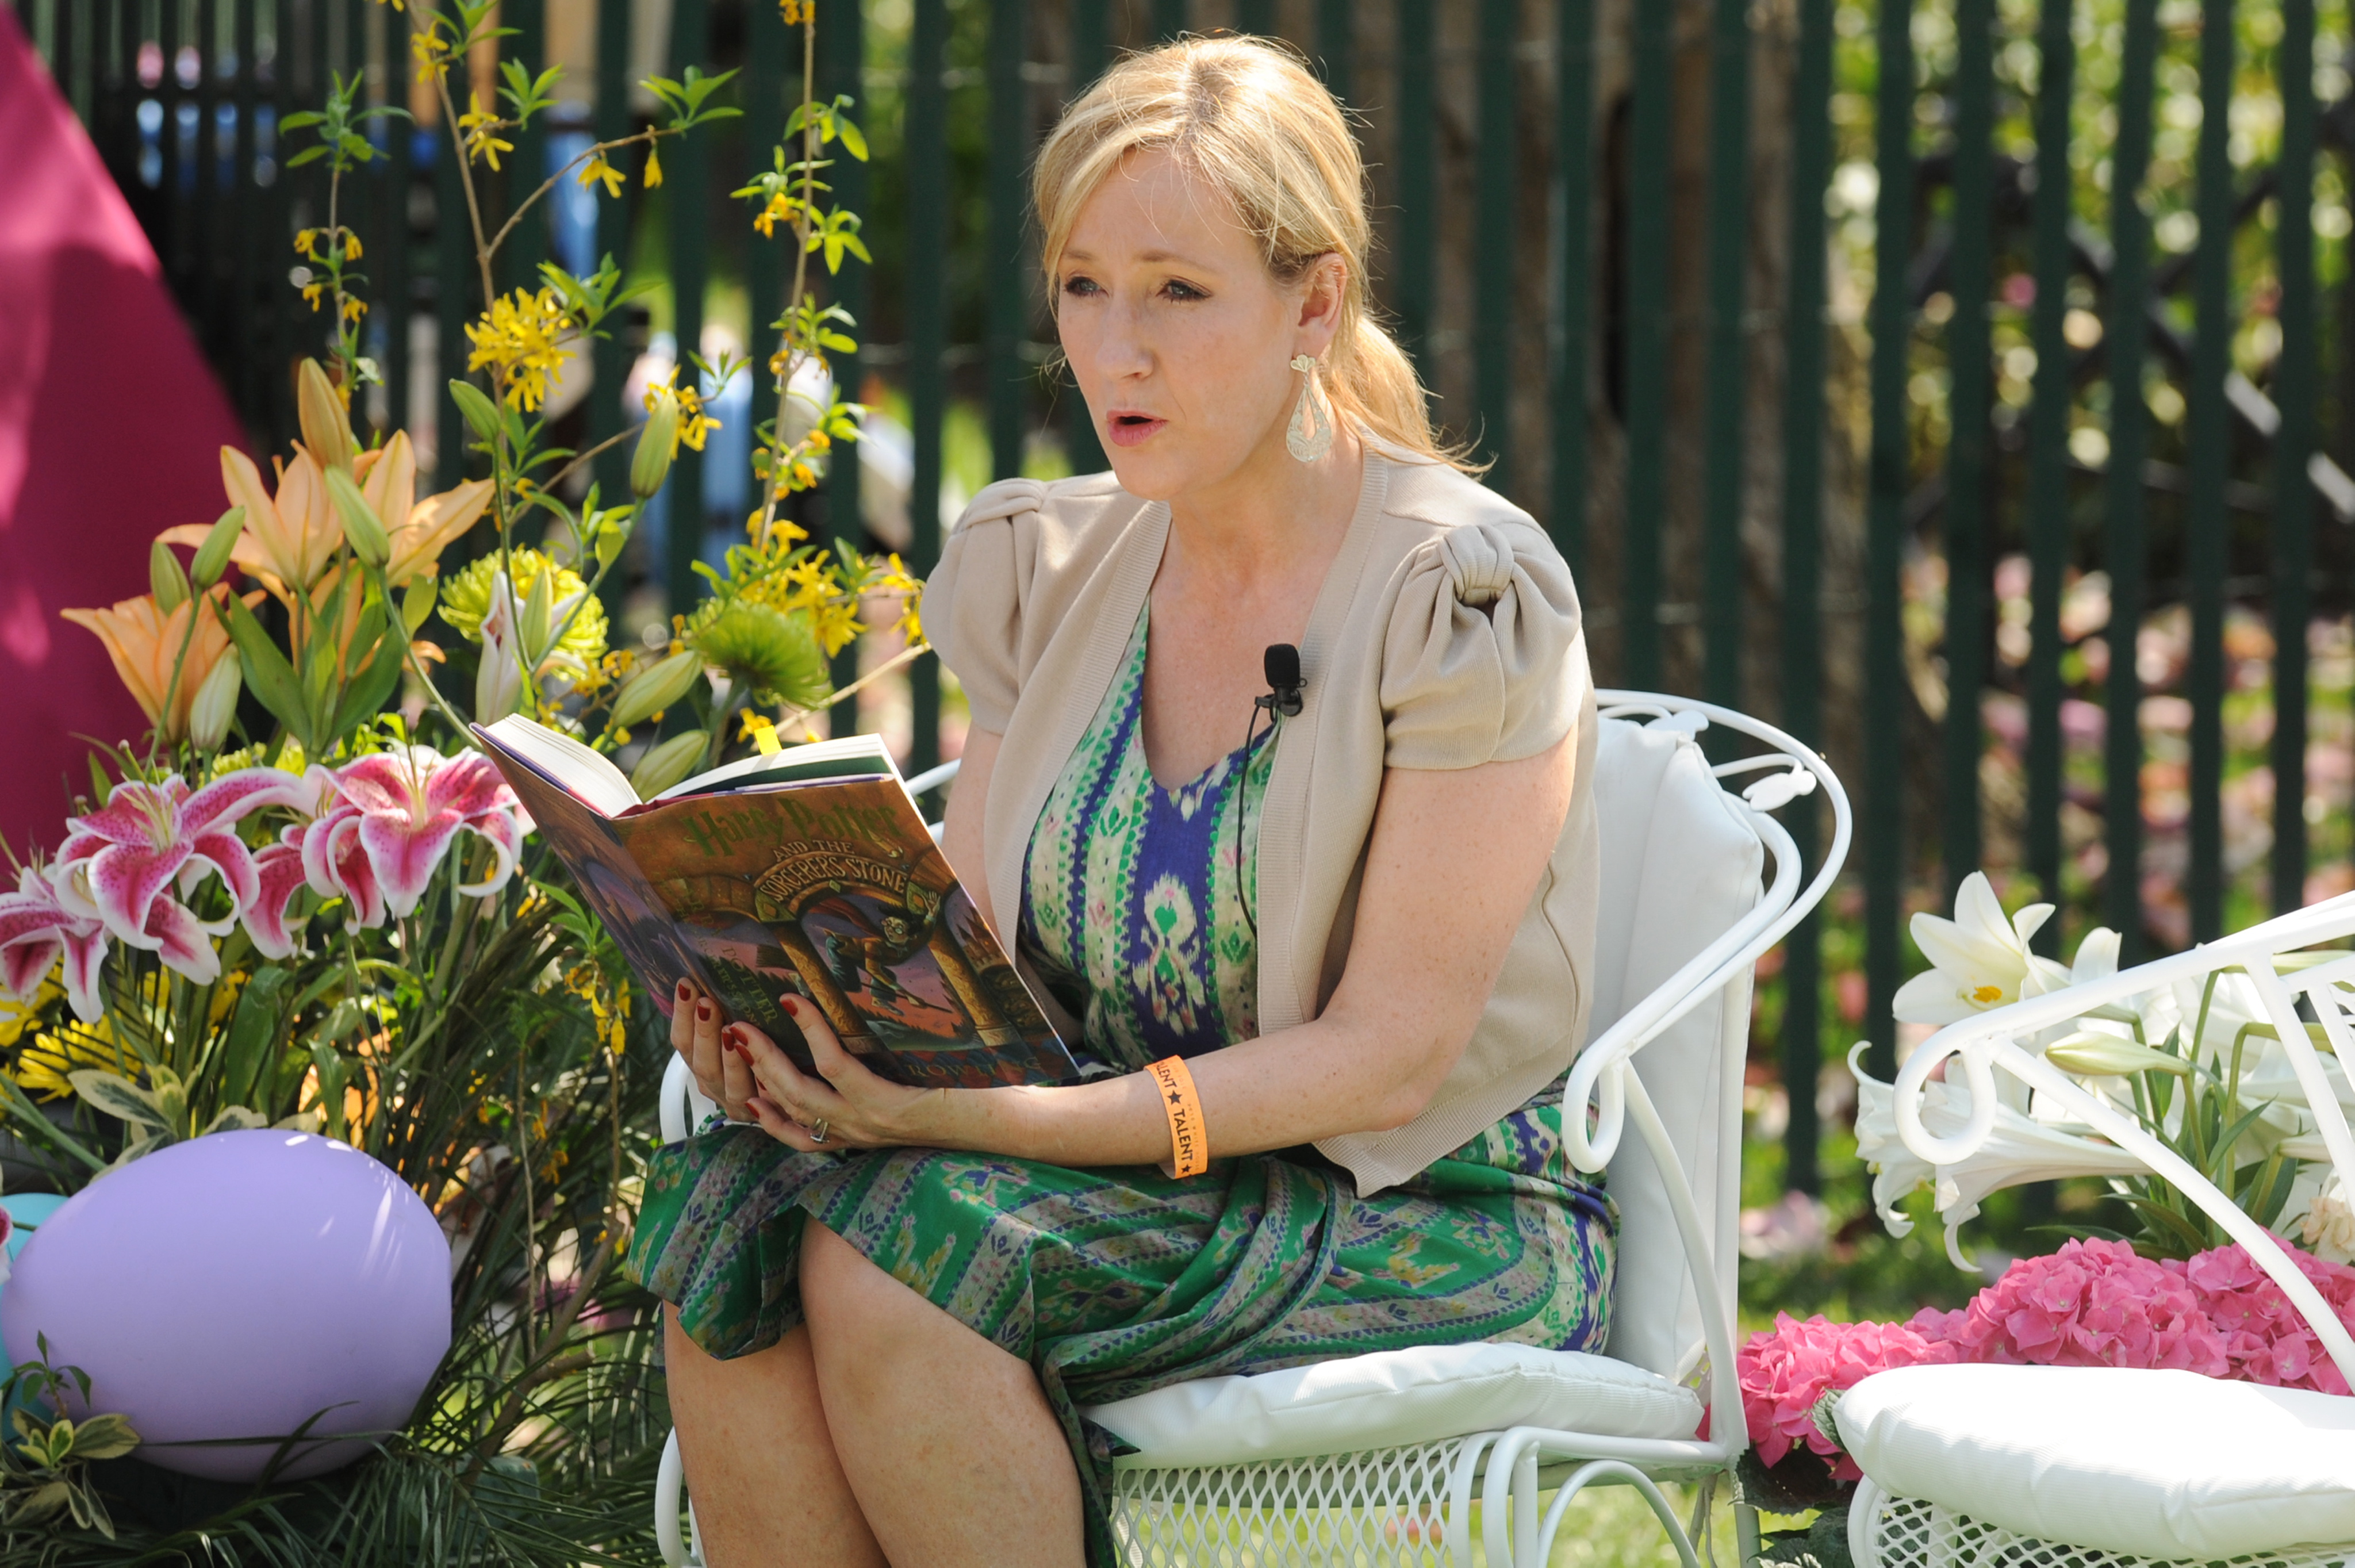 'NOTHING TO LOSE.' JK Rowling recounts her moments of rejection, using it to inspire other writers in a series of tweets. In this file photo, she reads a copy of 'Harry Potter and the Sorcerer's Stone' to children during the annual Easter Egg Roll at the White House in 2010. Photo by Michael Reynolds/EPA